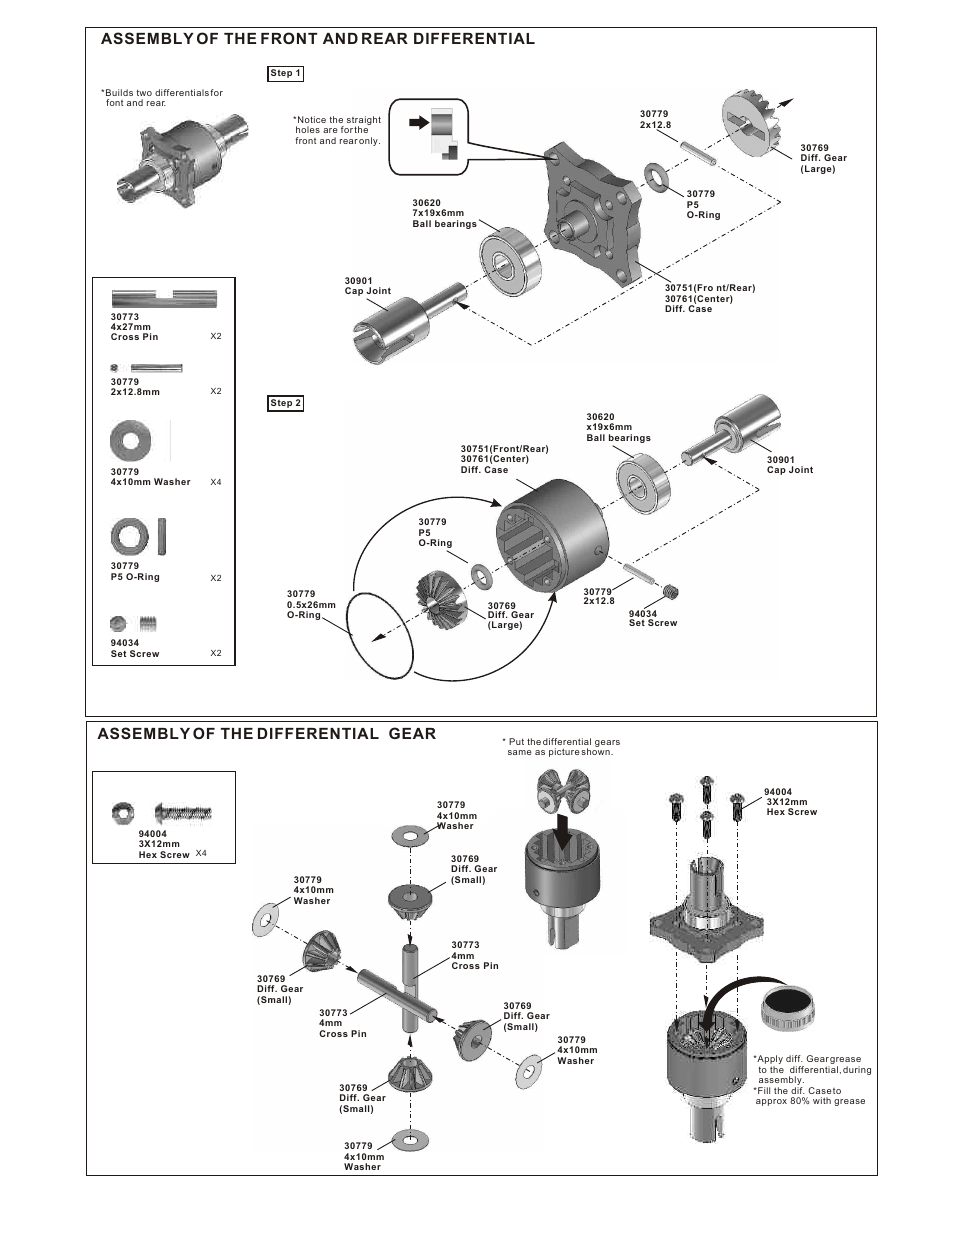 Assembly of the front and rear differential, Assembly of